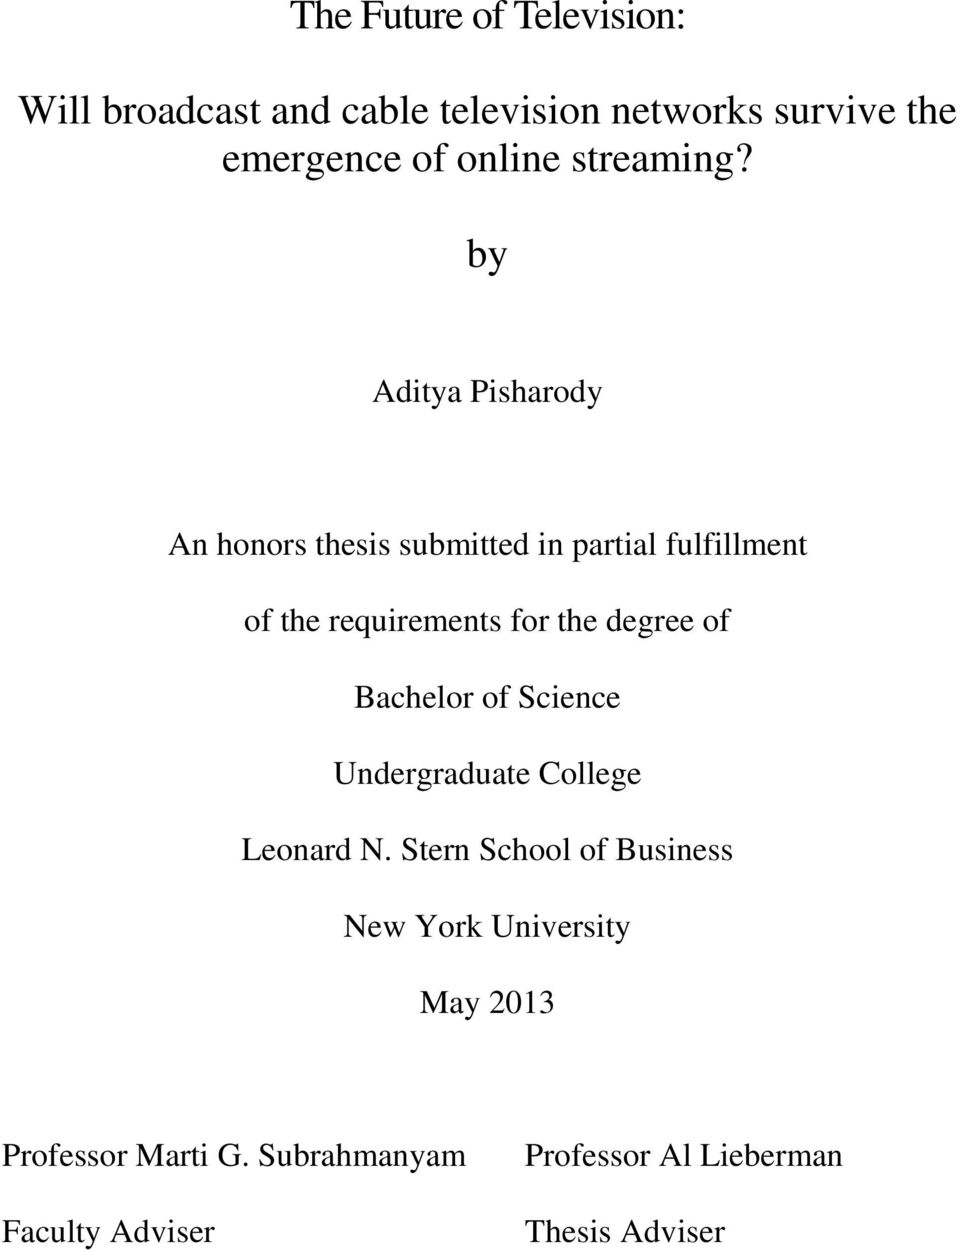 by Aditya Pisharody An honors thesis submitted in partial fulfillment of the requirements for the